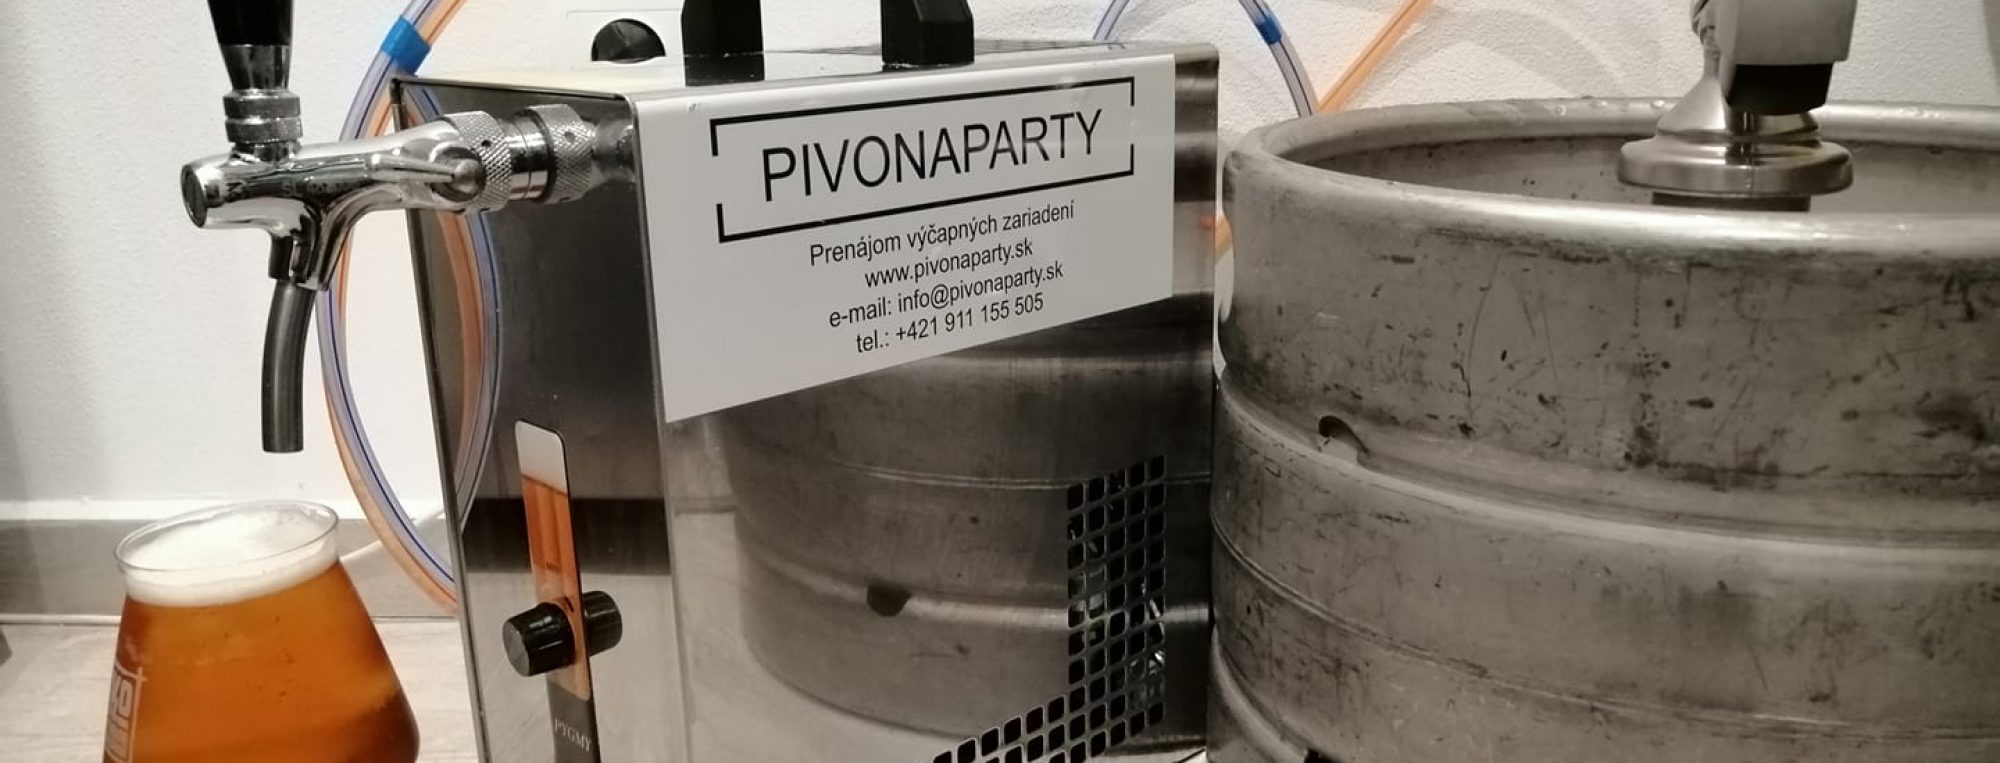 PIVONAPARTY